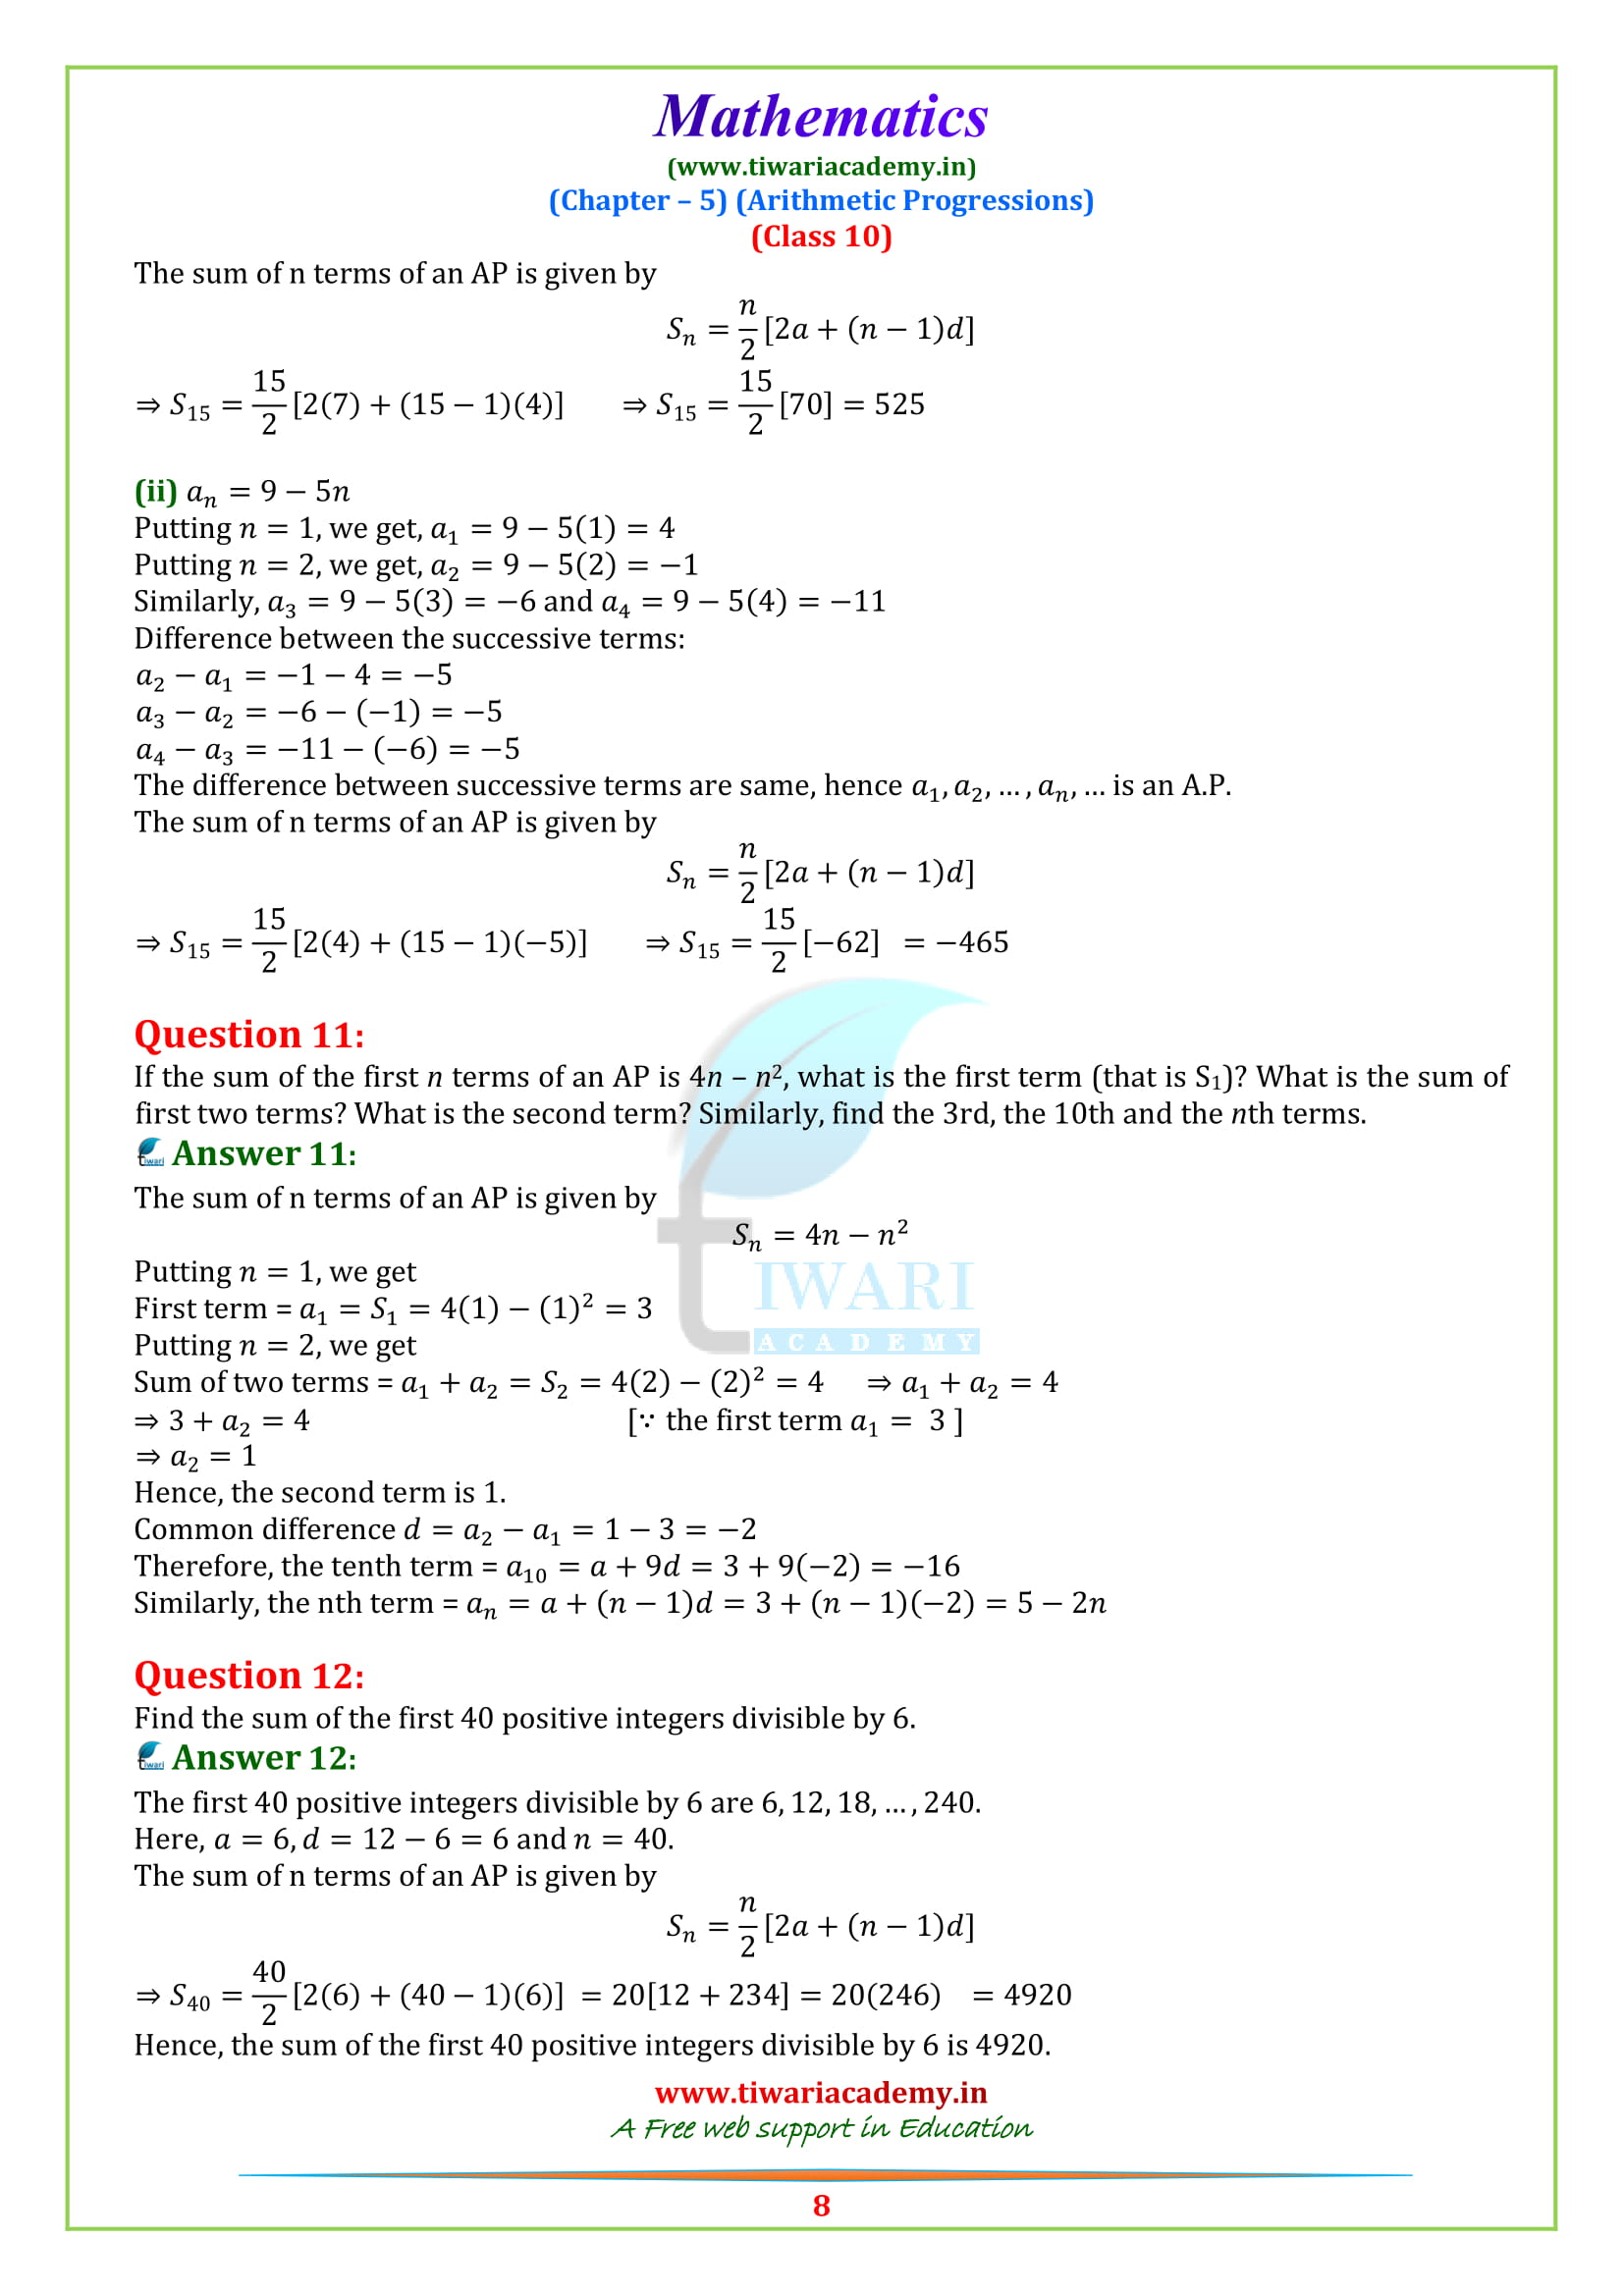 NCERT Sols for class 10 Maths exercise 5.3 in PDF